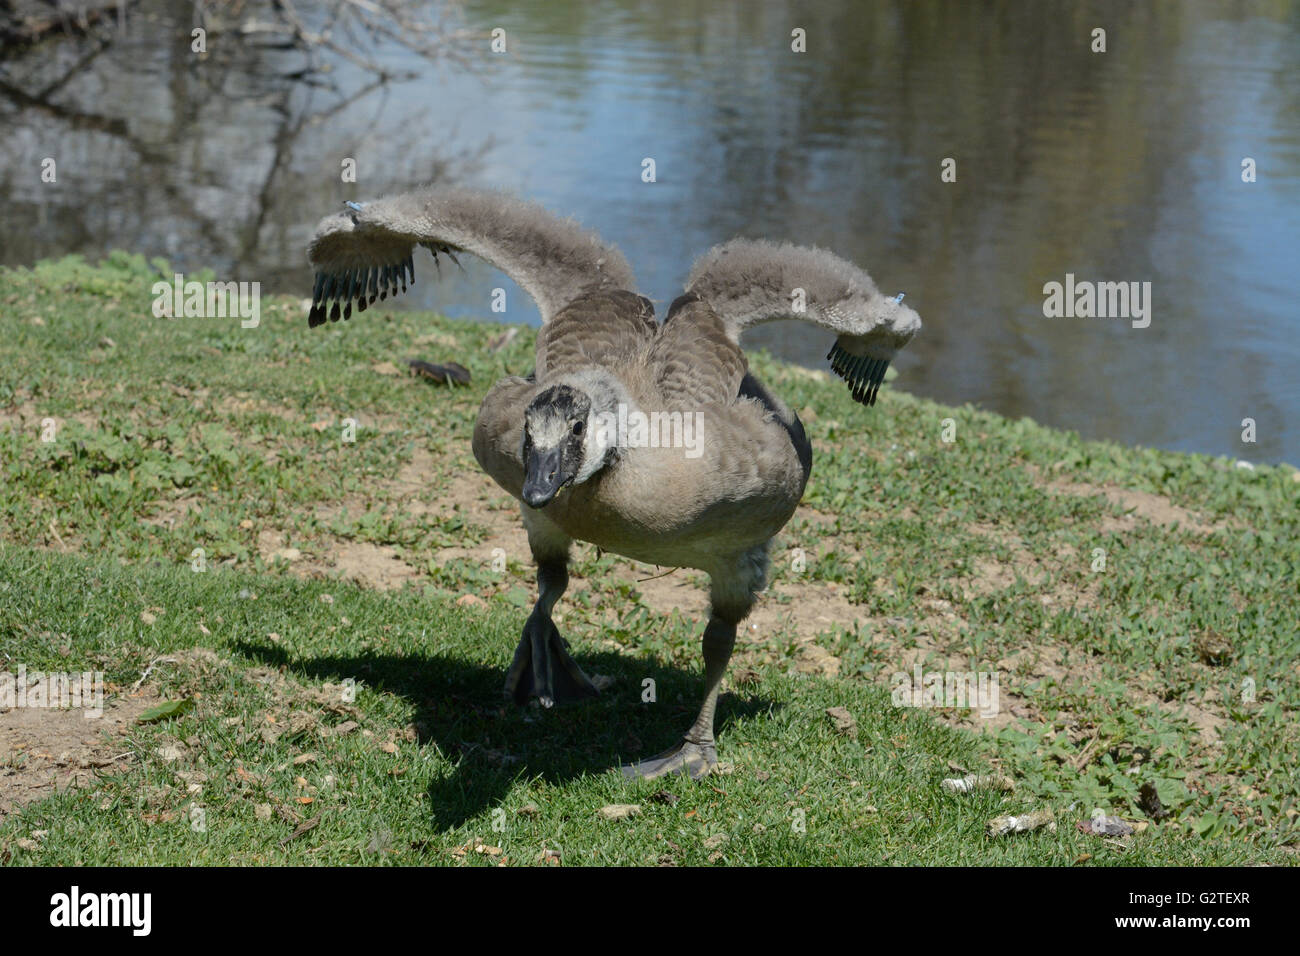 Angry adolescent Canada Goose charging threat of another goose from different family entering its space - Stock Image